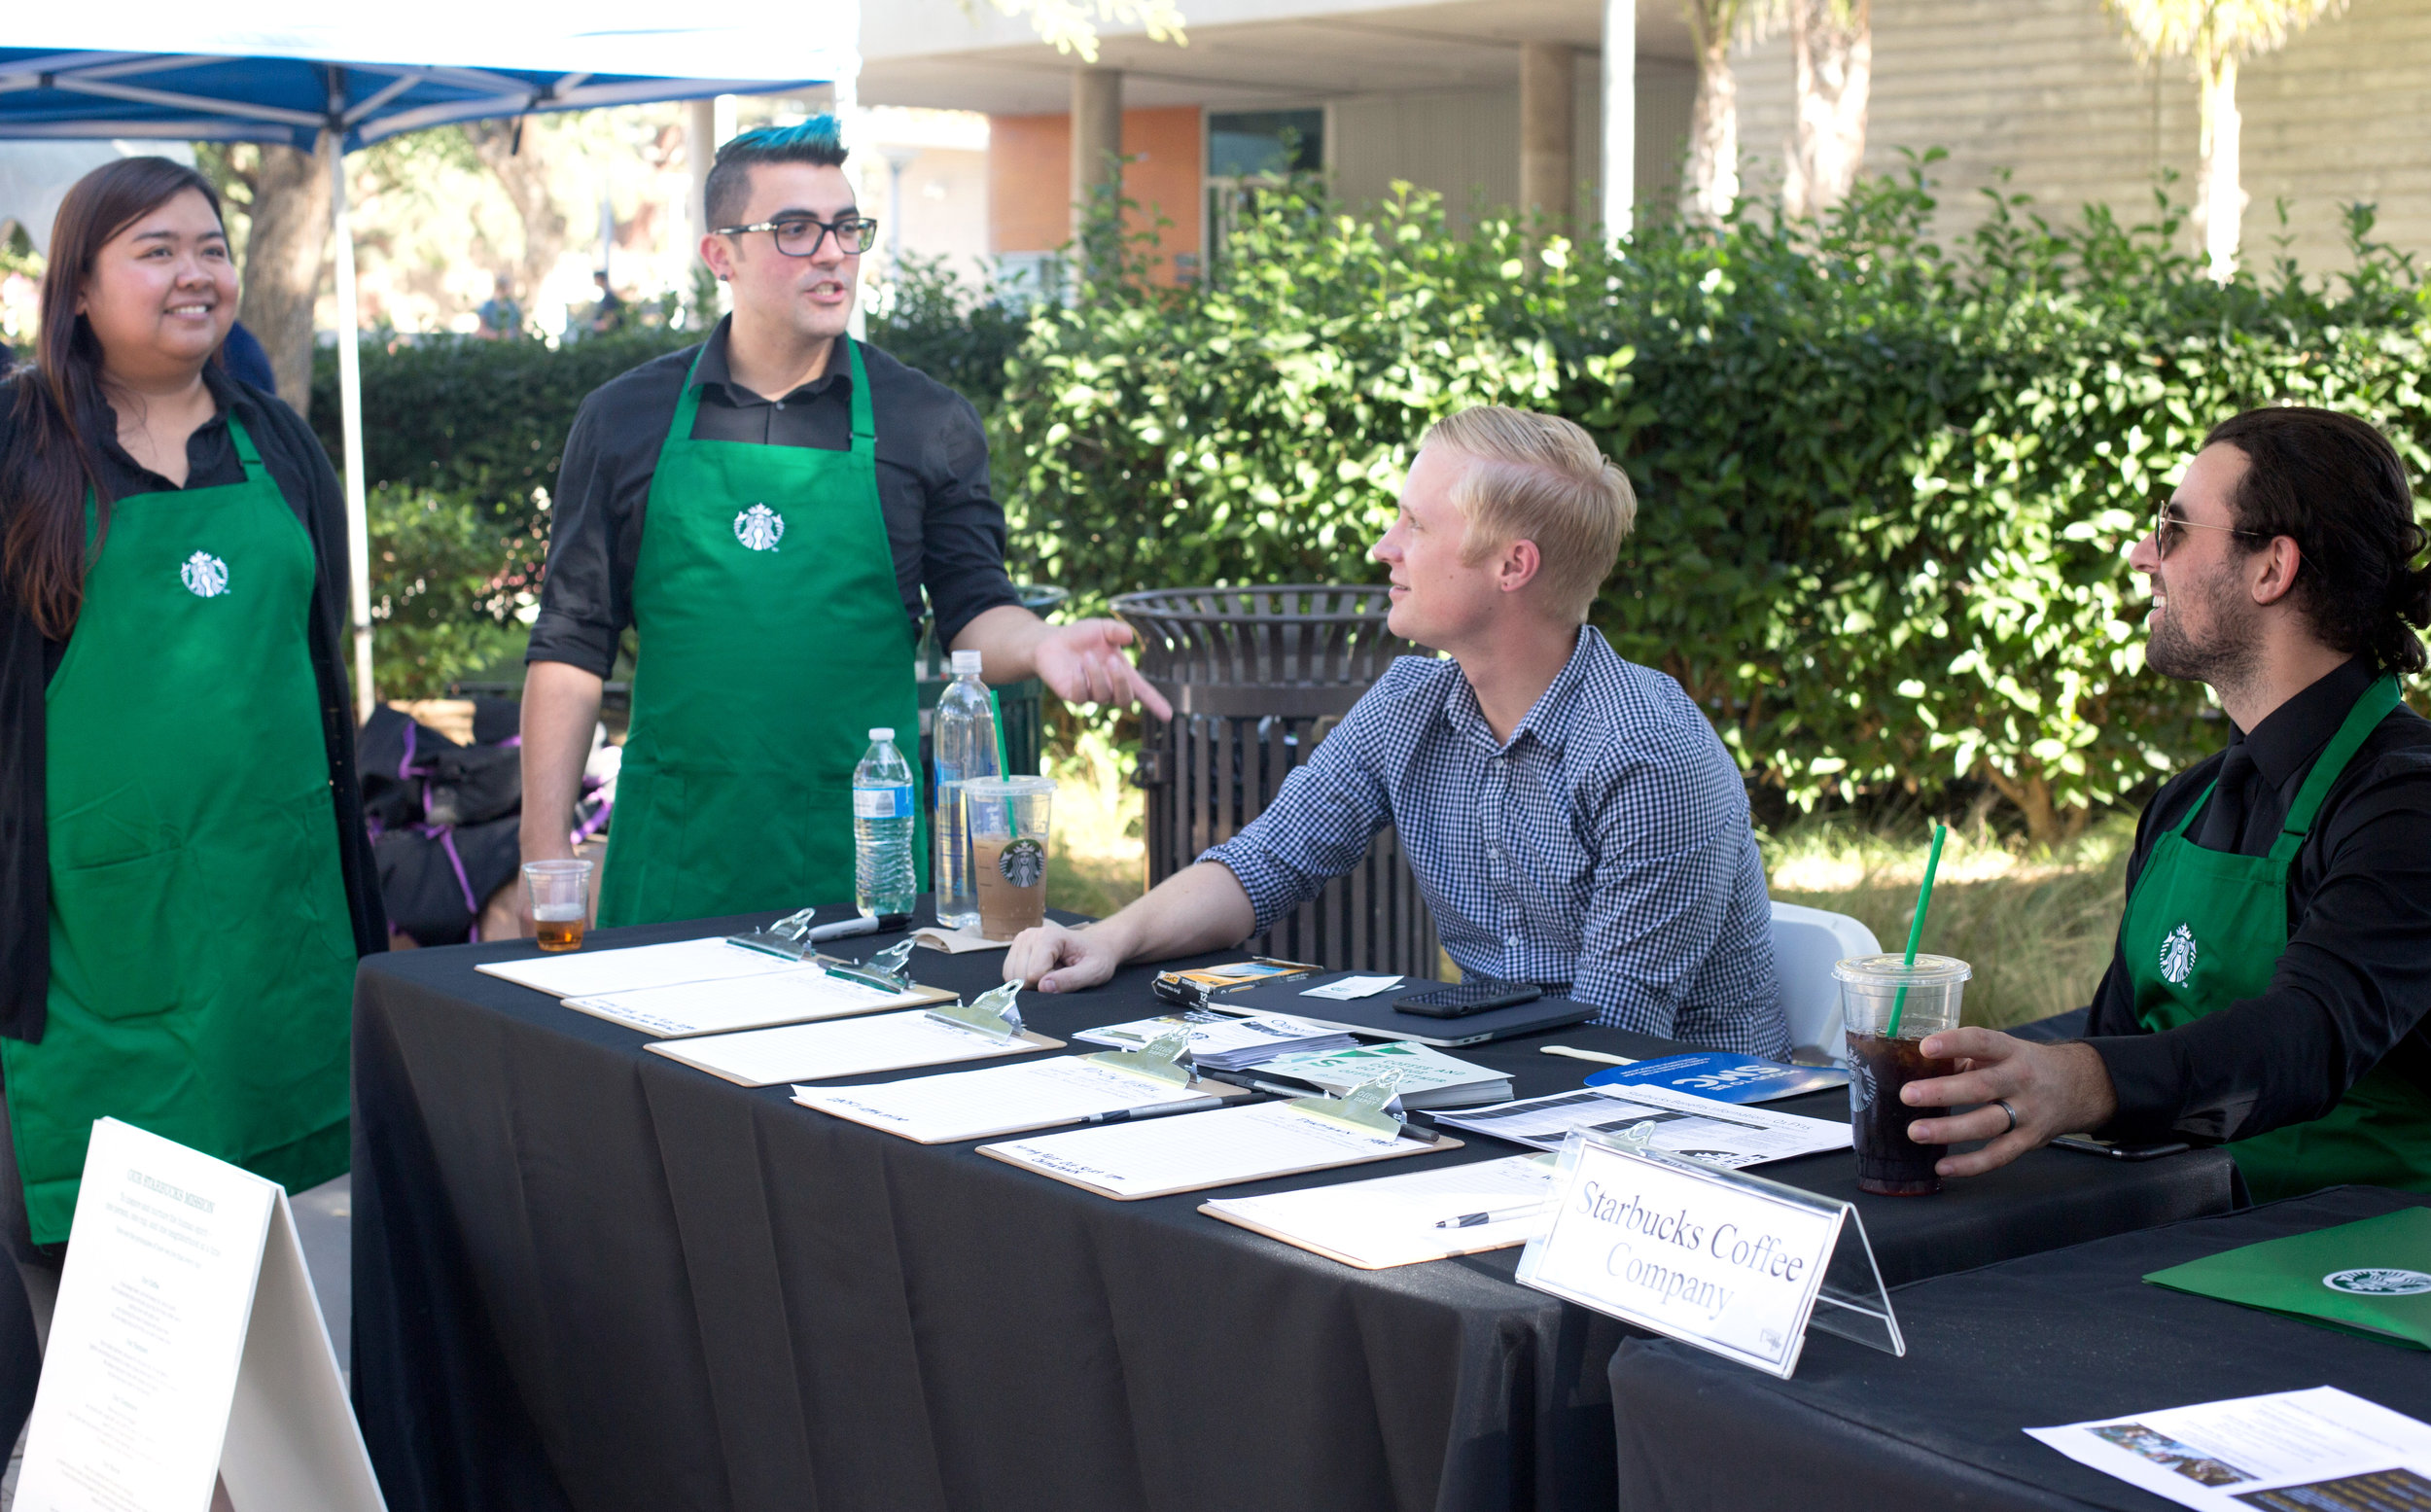 (L to R) Starbucks Store Managers Carla Henriquez and Vincent Perez at the Starbucks employment booth with District Manager August Anderson and Store Manager Jarrod Jacobus scouting for friendly faces in the student population at the Job Fair in Santa Monica College in Santa Monica, Calif., October 24, 2017. (Photo By: Ripsime Avetisyan/Corsair Staff)